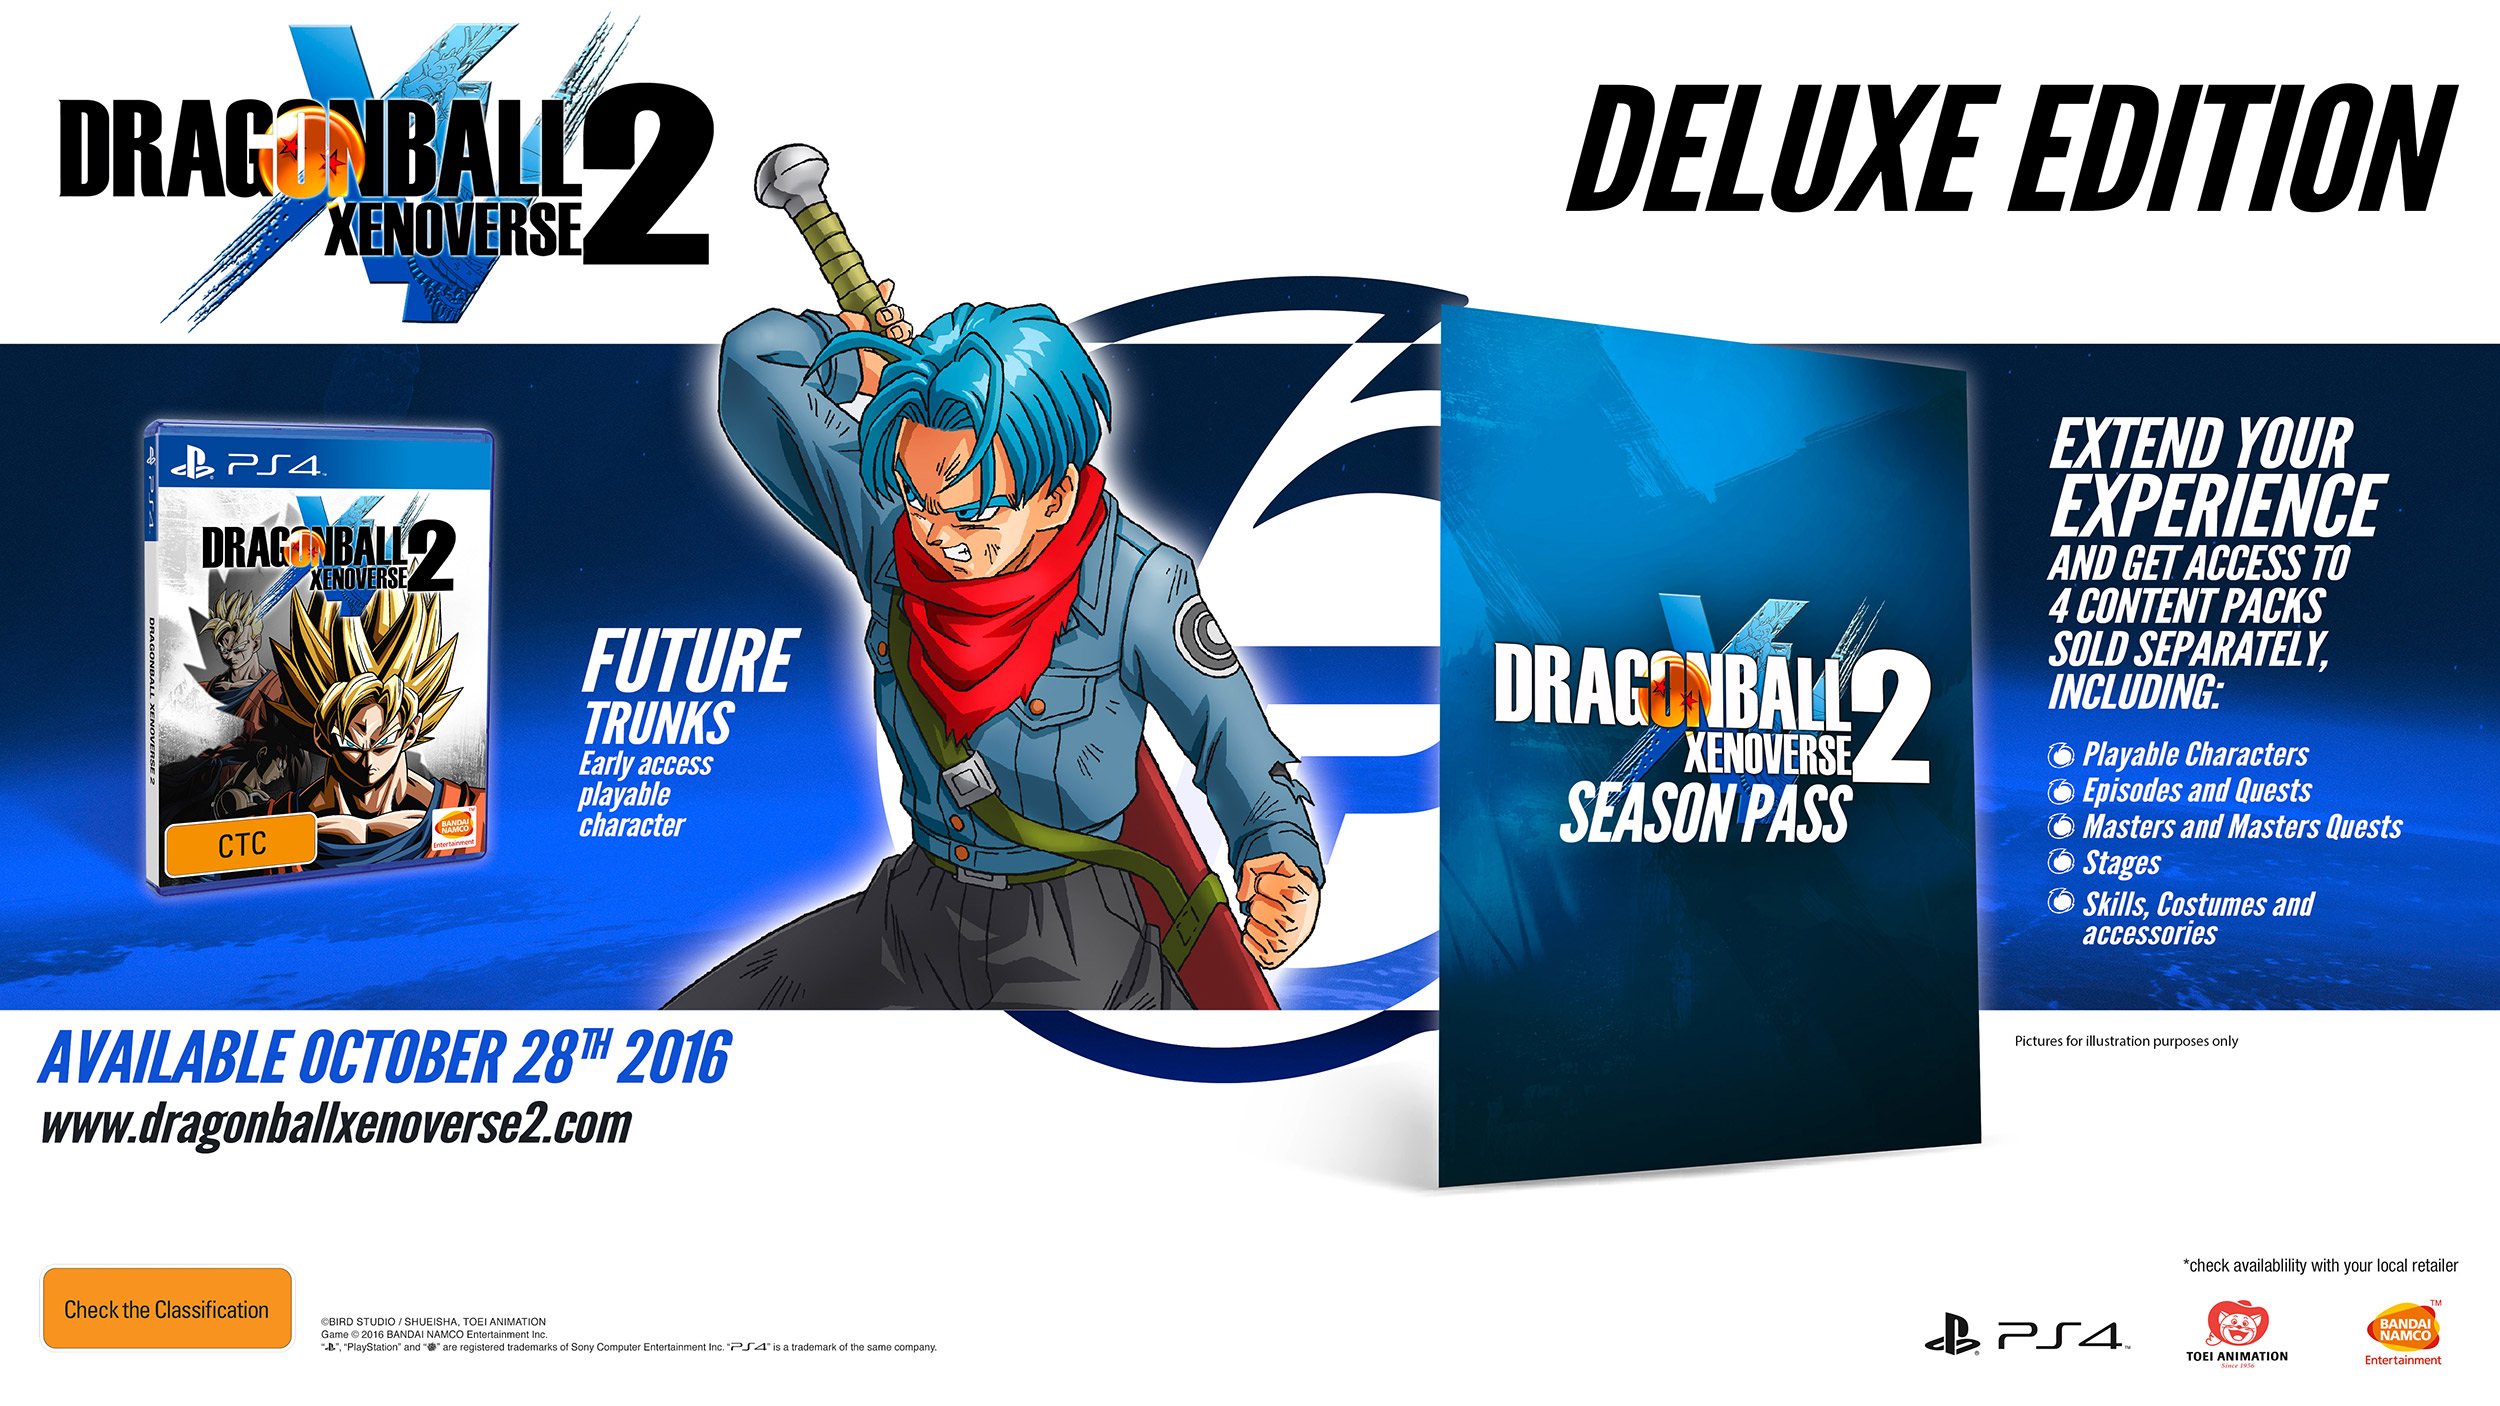 DBX2_MOCK-UP-DELUXE_ANZ